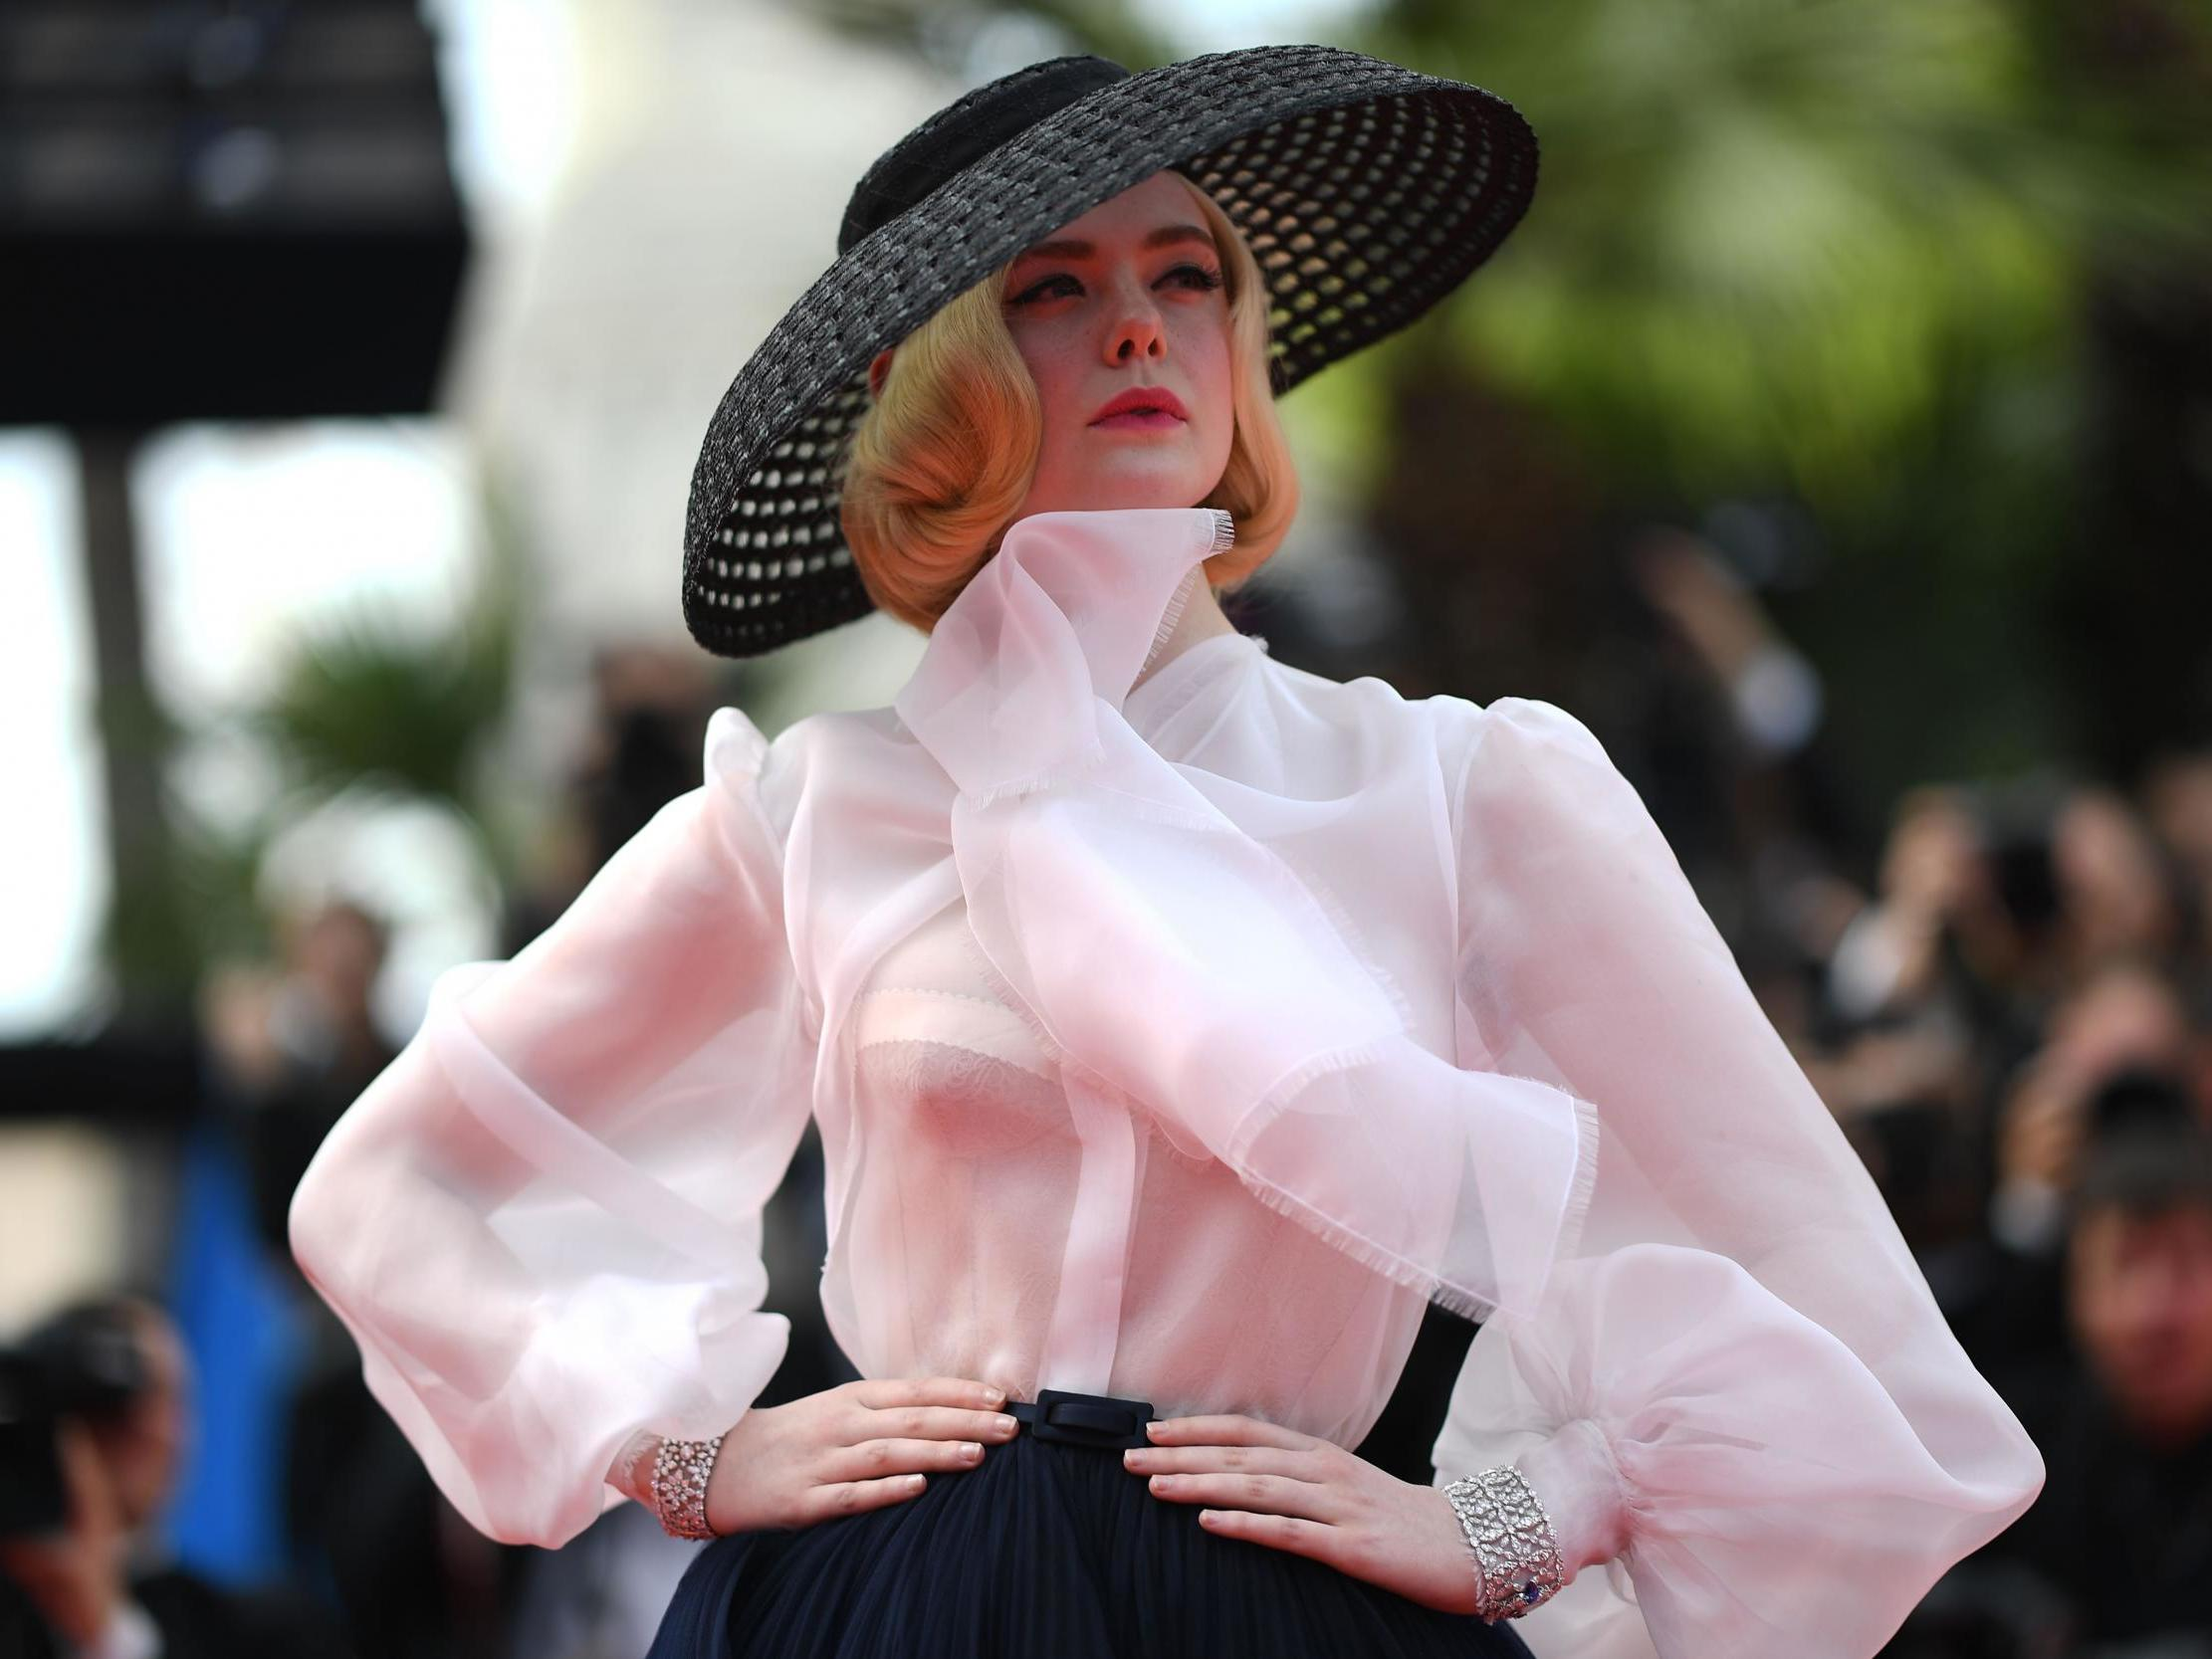 3477ff89feca12 Cannes 2019: Elle Fanning wows on red carpet in couture Dior shortly after  fainting at film festival | The Independent